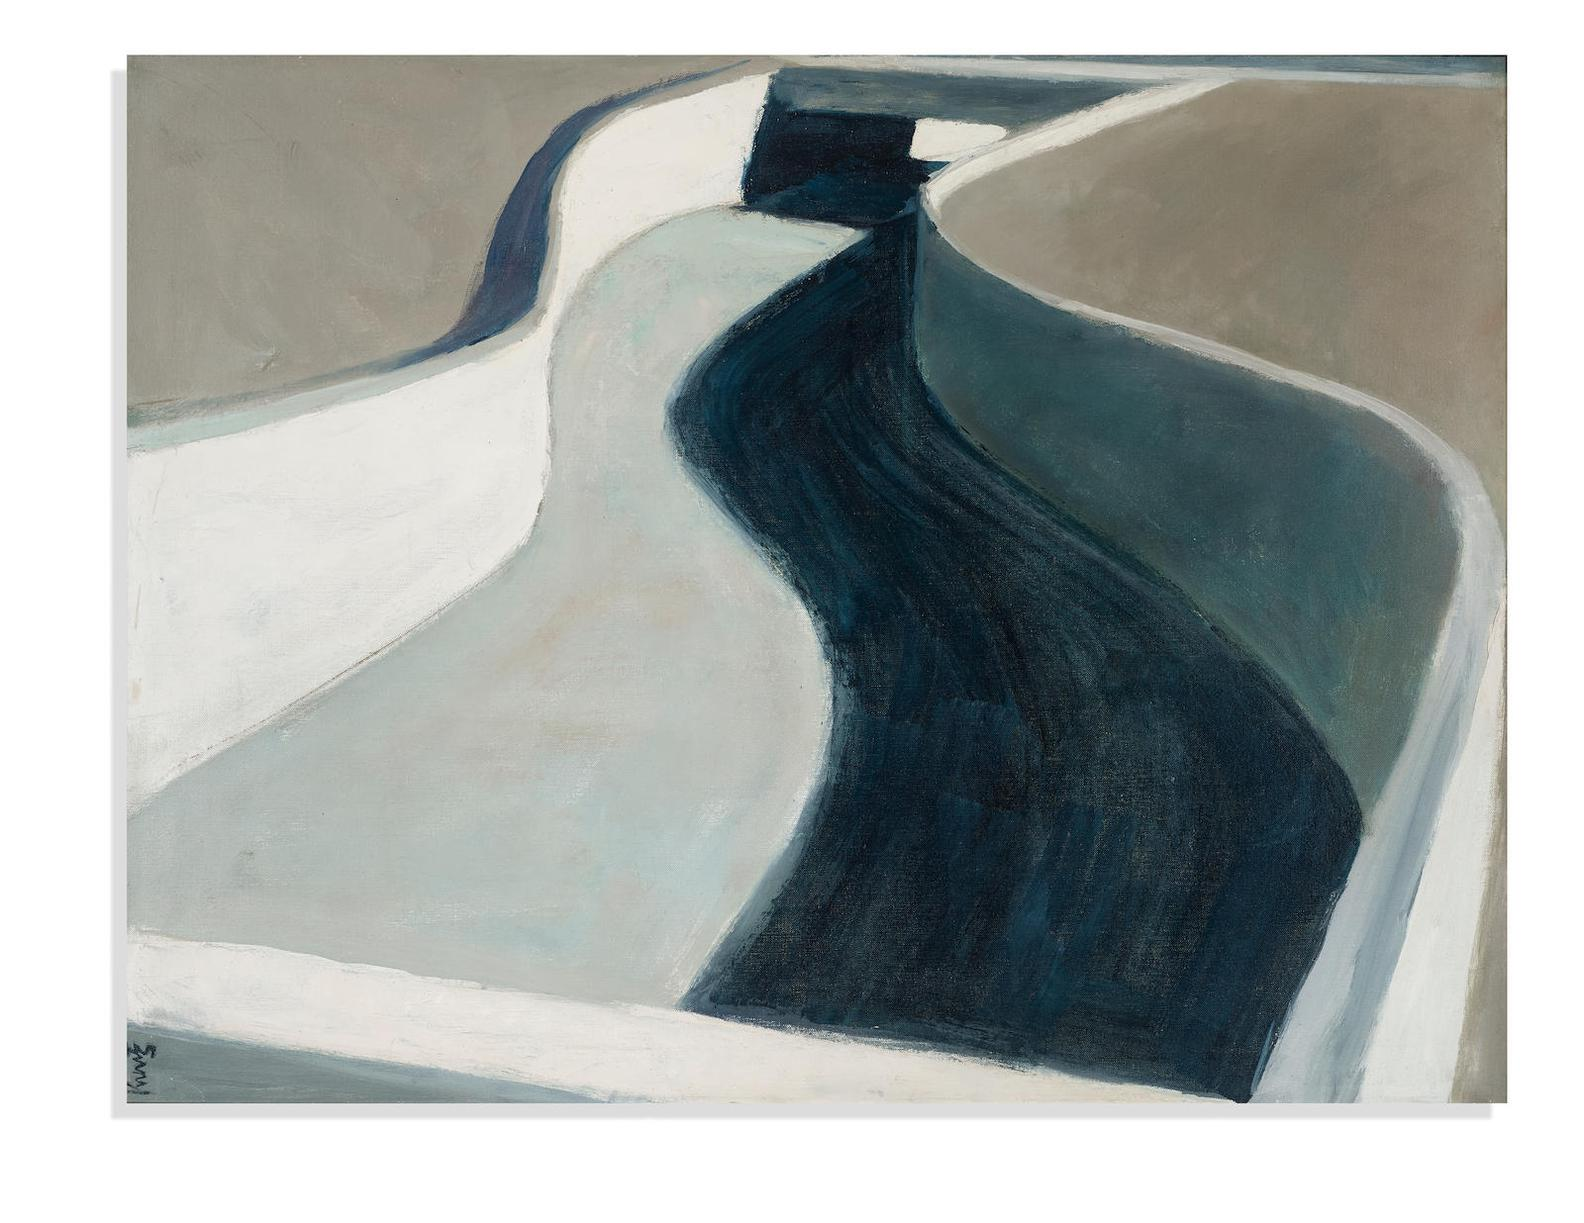 Roger Kuntz - Concrete Canyon (Study) (From The Freeway Series)-1962